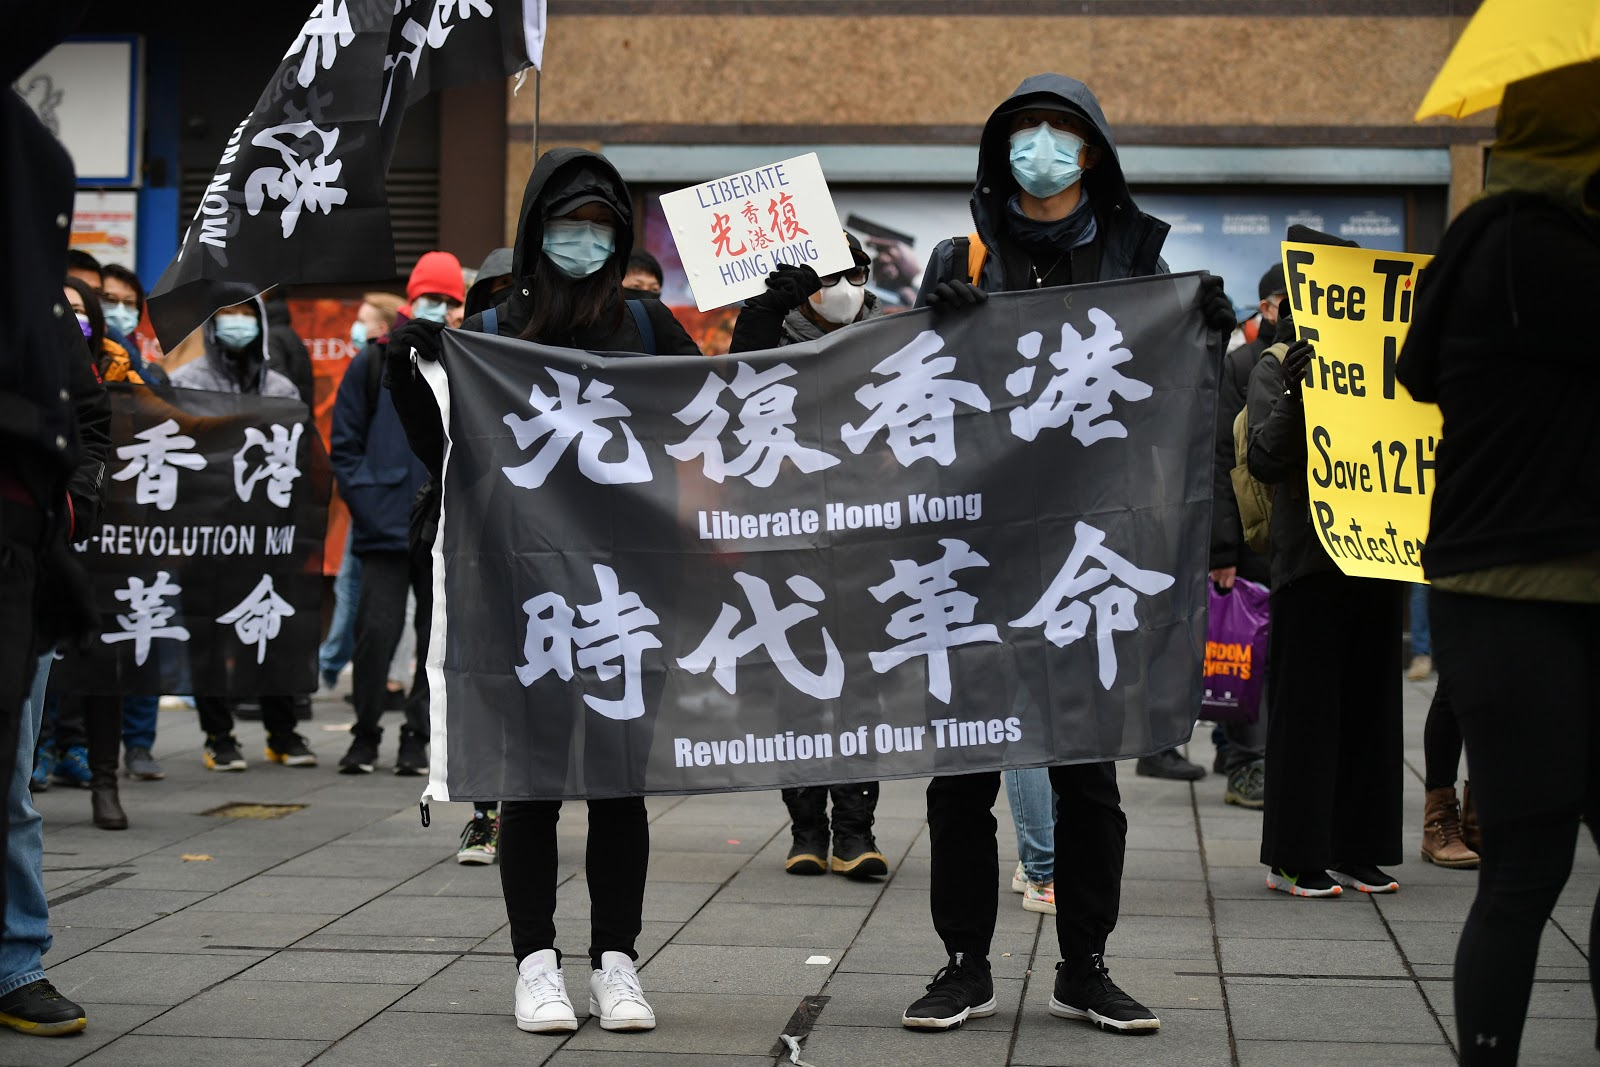 Protesters gather with banners at an event organized by Justitia Hong Kong to mourn the loss of Hong Kong's political freedoms, in Leicester Square